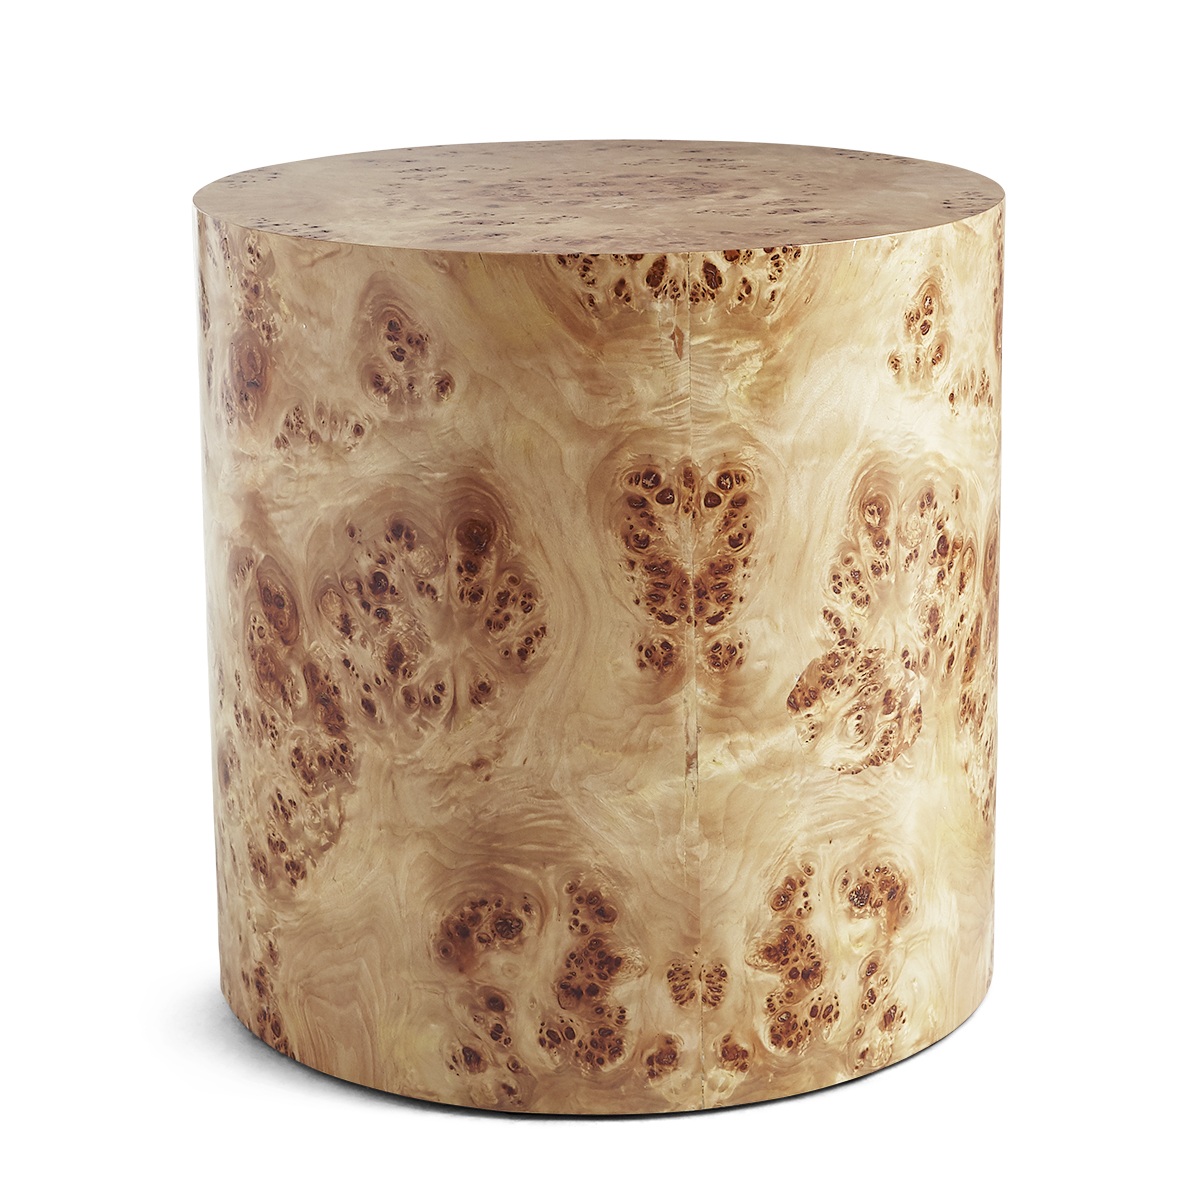 marrakesh side table moroccan tea tables wisteria thumb burl wood accent cylinder quick view room essentials mirror bar set round mosaic outdoor wagon wheel furniture large drop